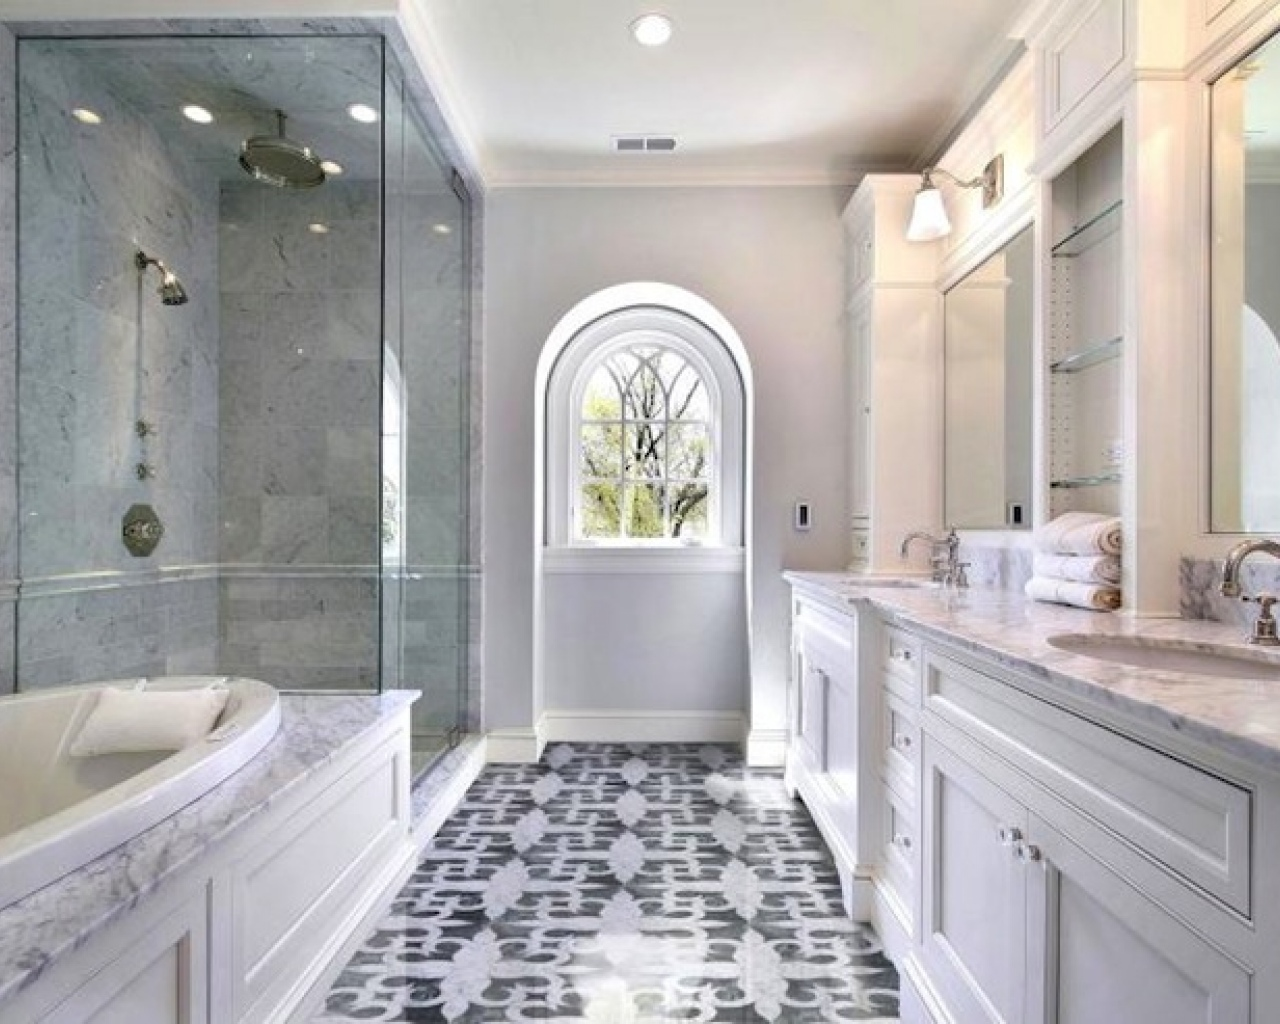 25 amazing italian bathroom tile designs ideas and pictures for Bathroom tile design ideas